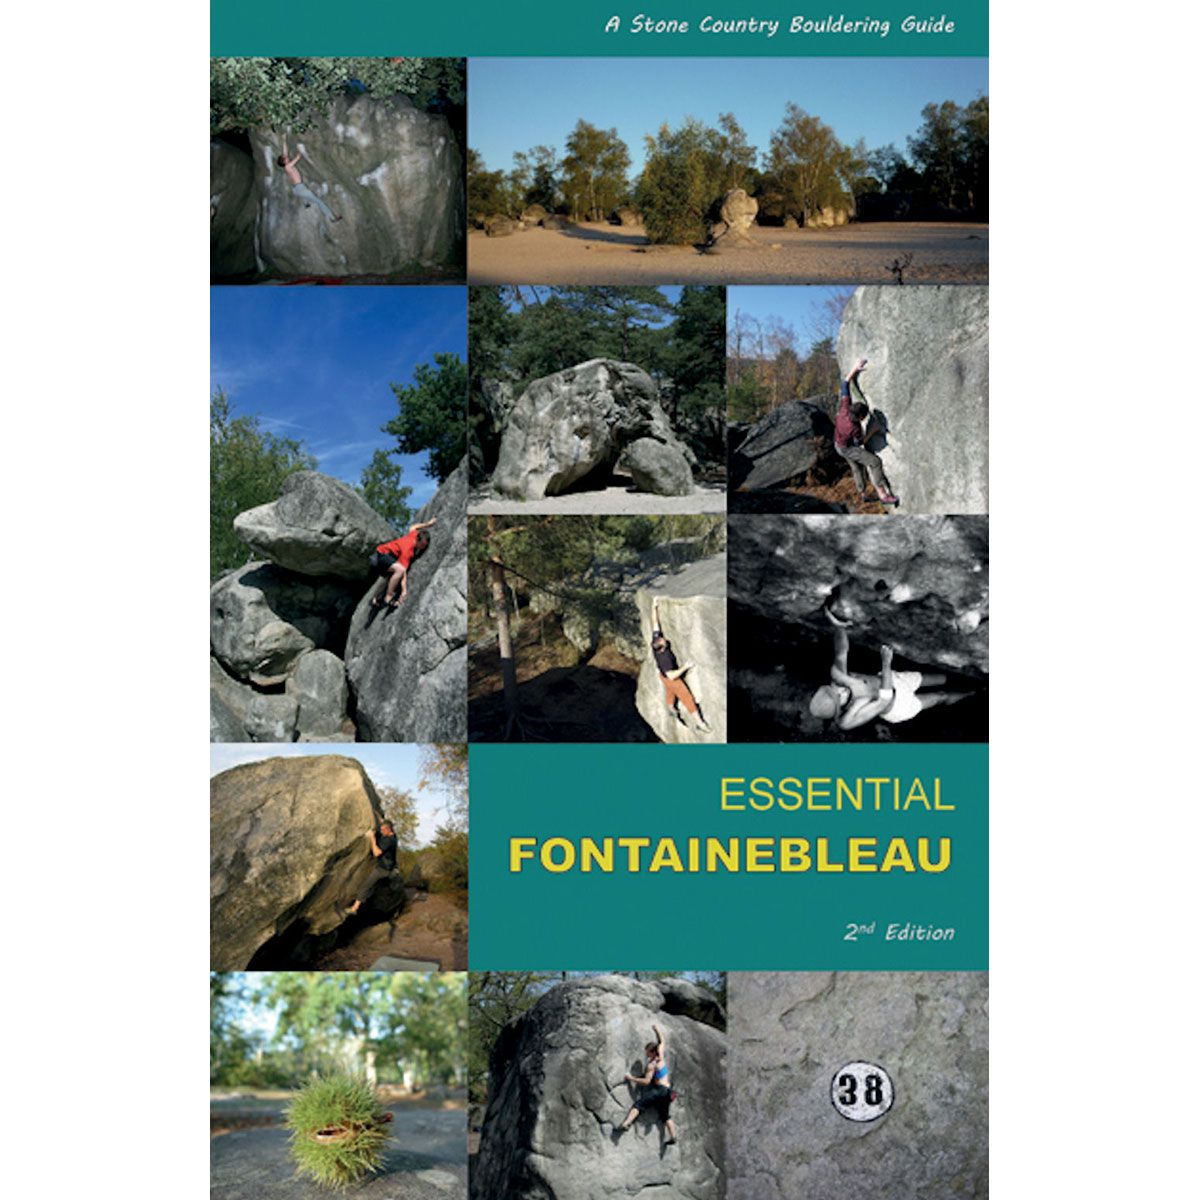 Image of Stone Country Press LTD Essential Fontainebleau, 2nd edition